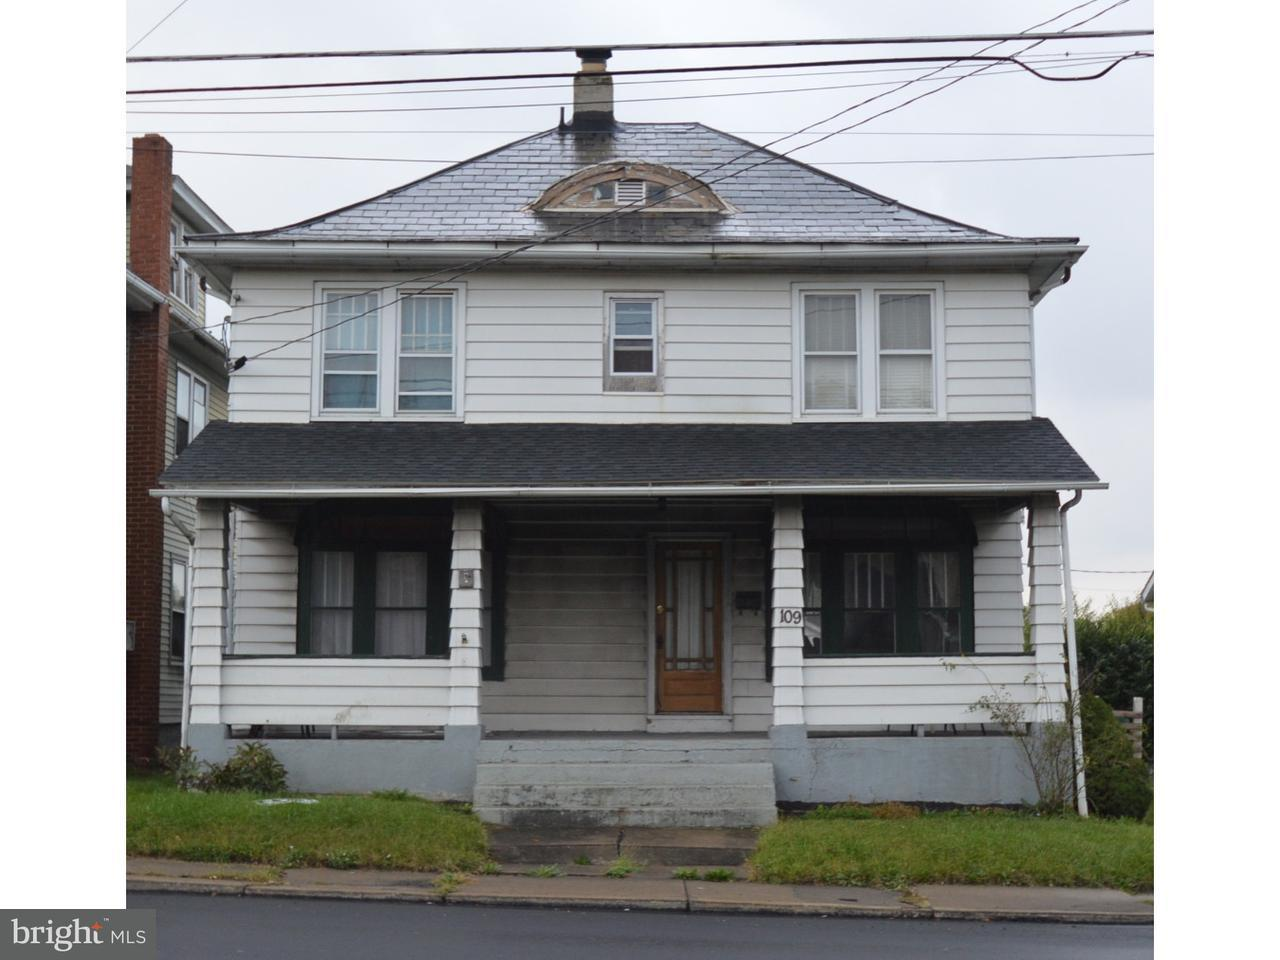 Single Family Home for Sale at 109 N LEHIGH Avenue Wind Gap, Pennsylvania 18091 United States